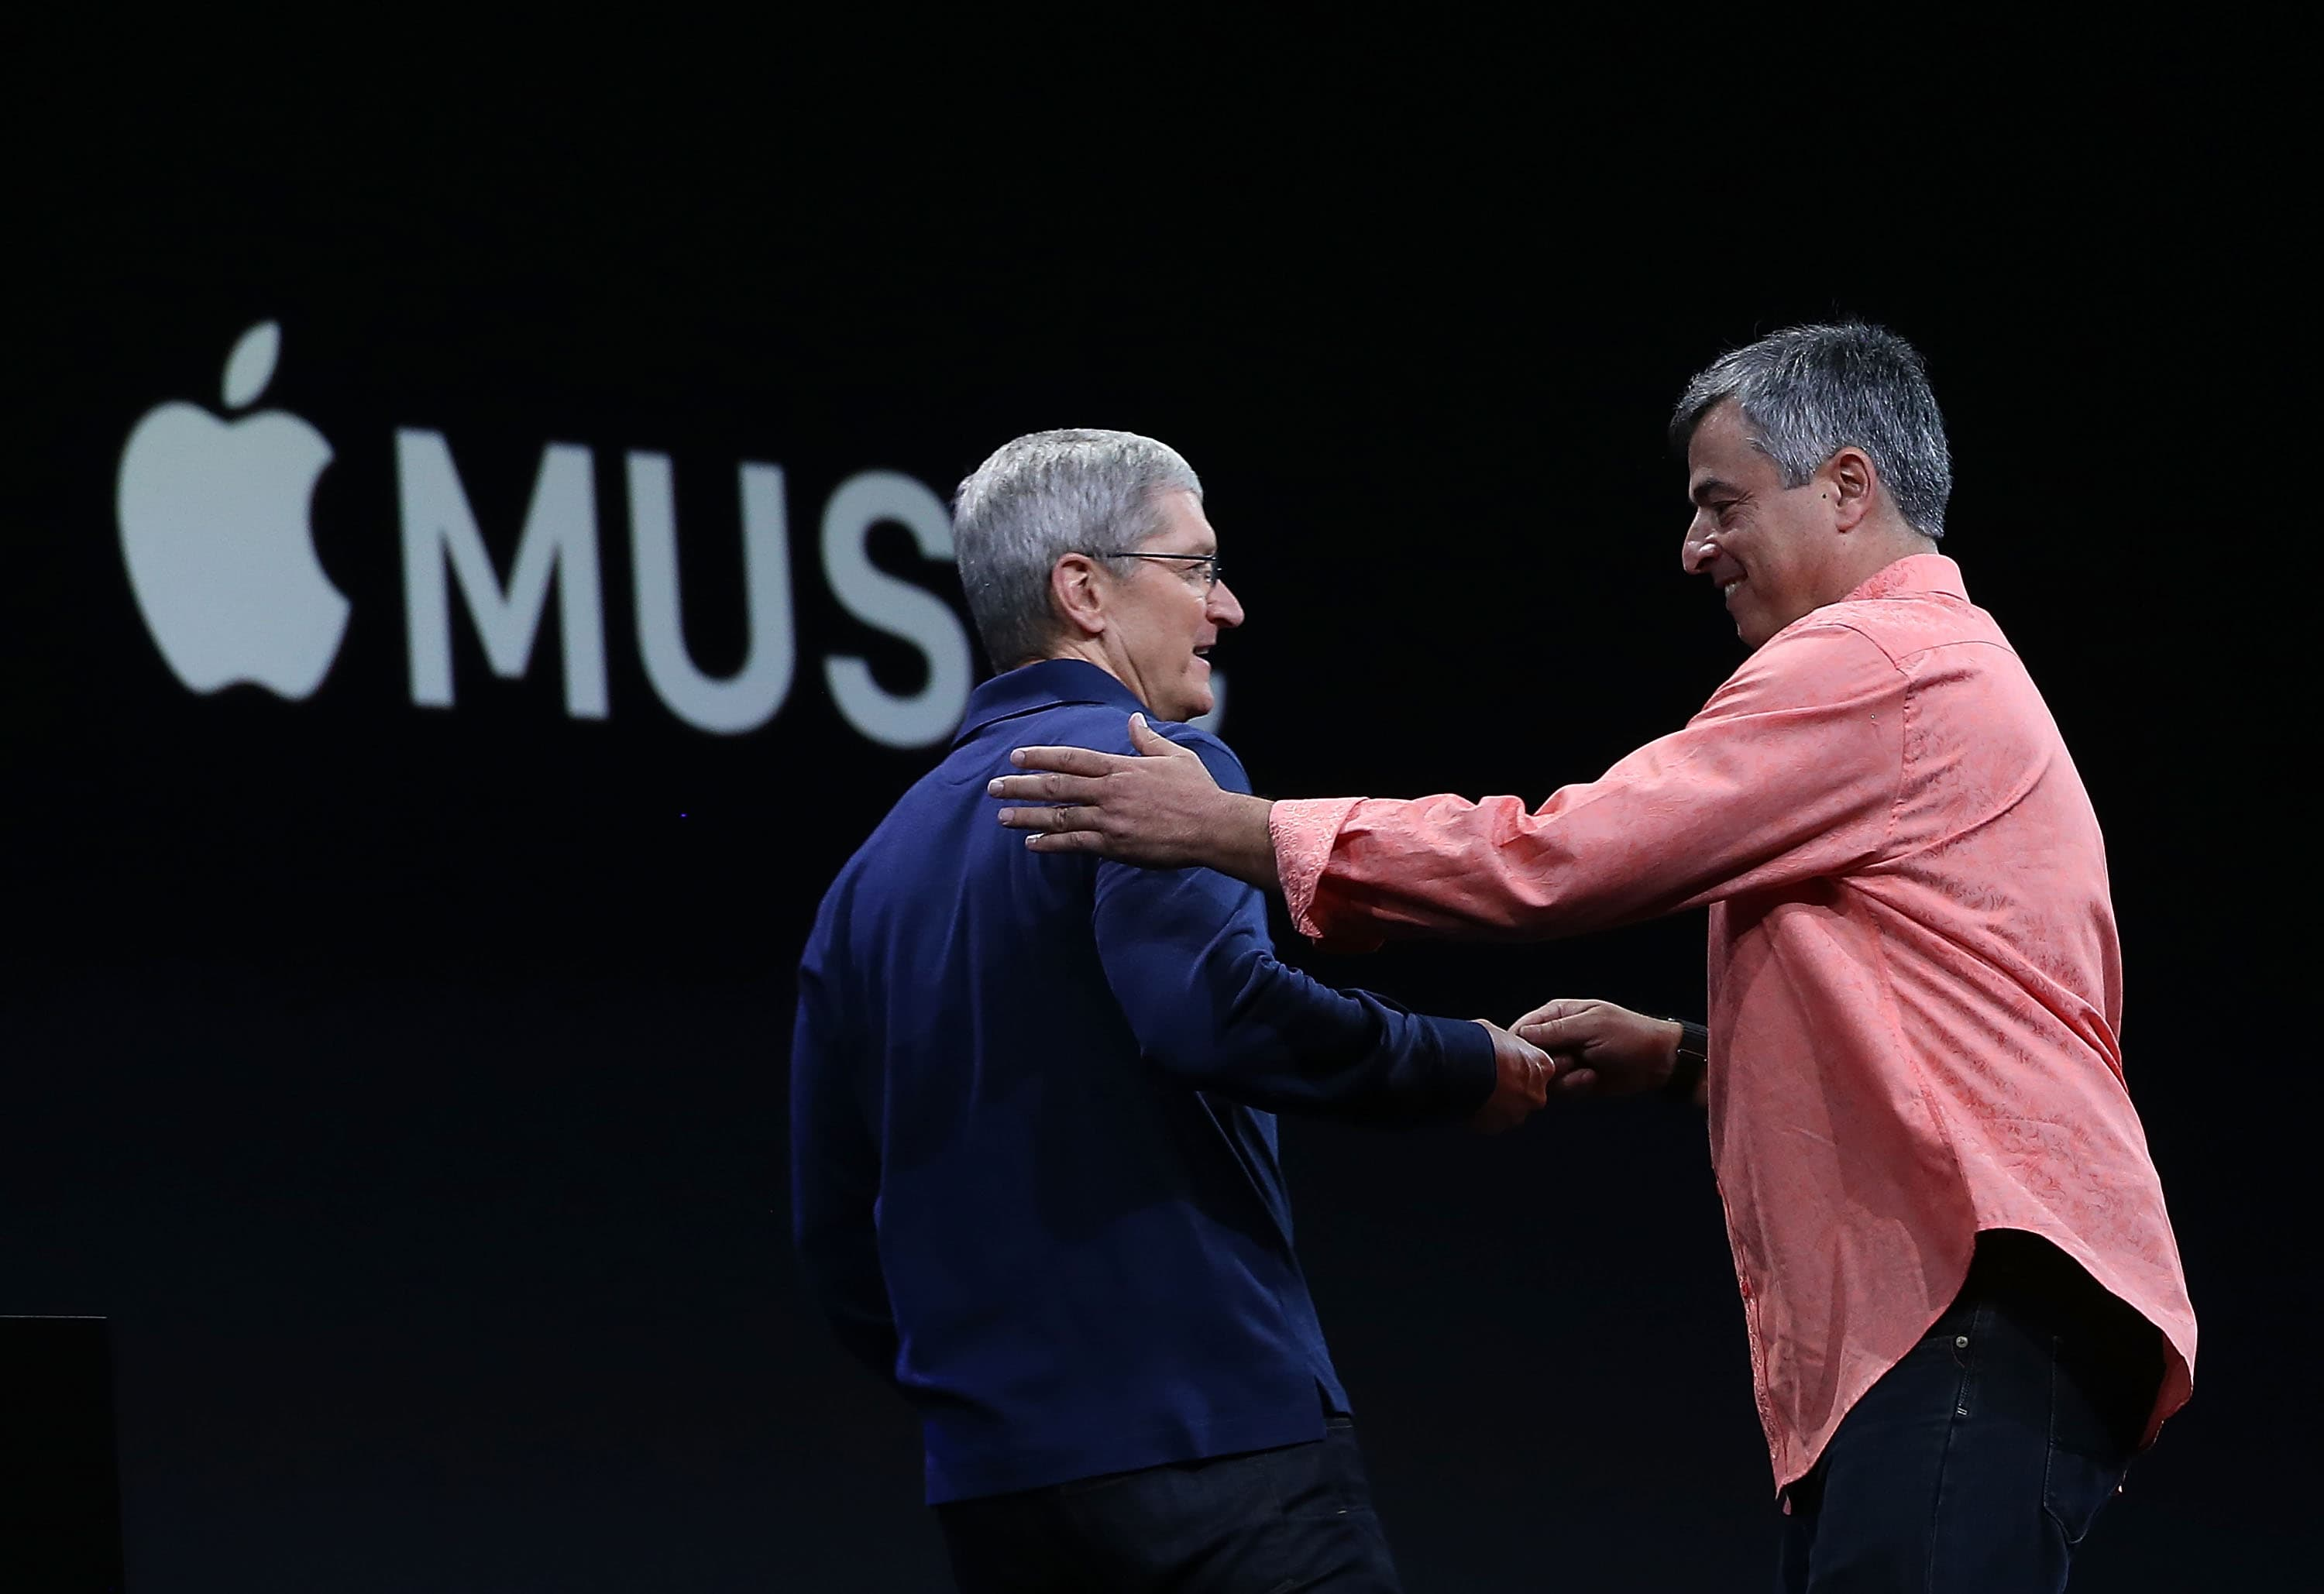 Apple's senior vice president of Internet Software and Services Eddy Cue (R) greets Apple CEO Tim Cook (L) during the Apple WWDC on June 8, 2015 in San Francisco, California.